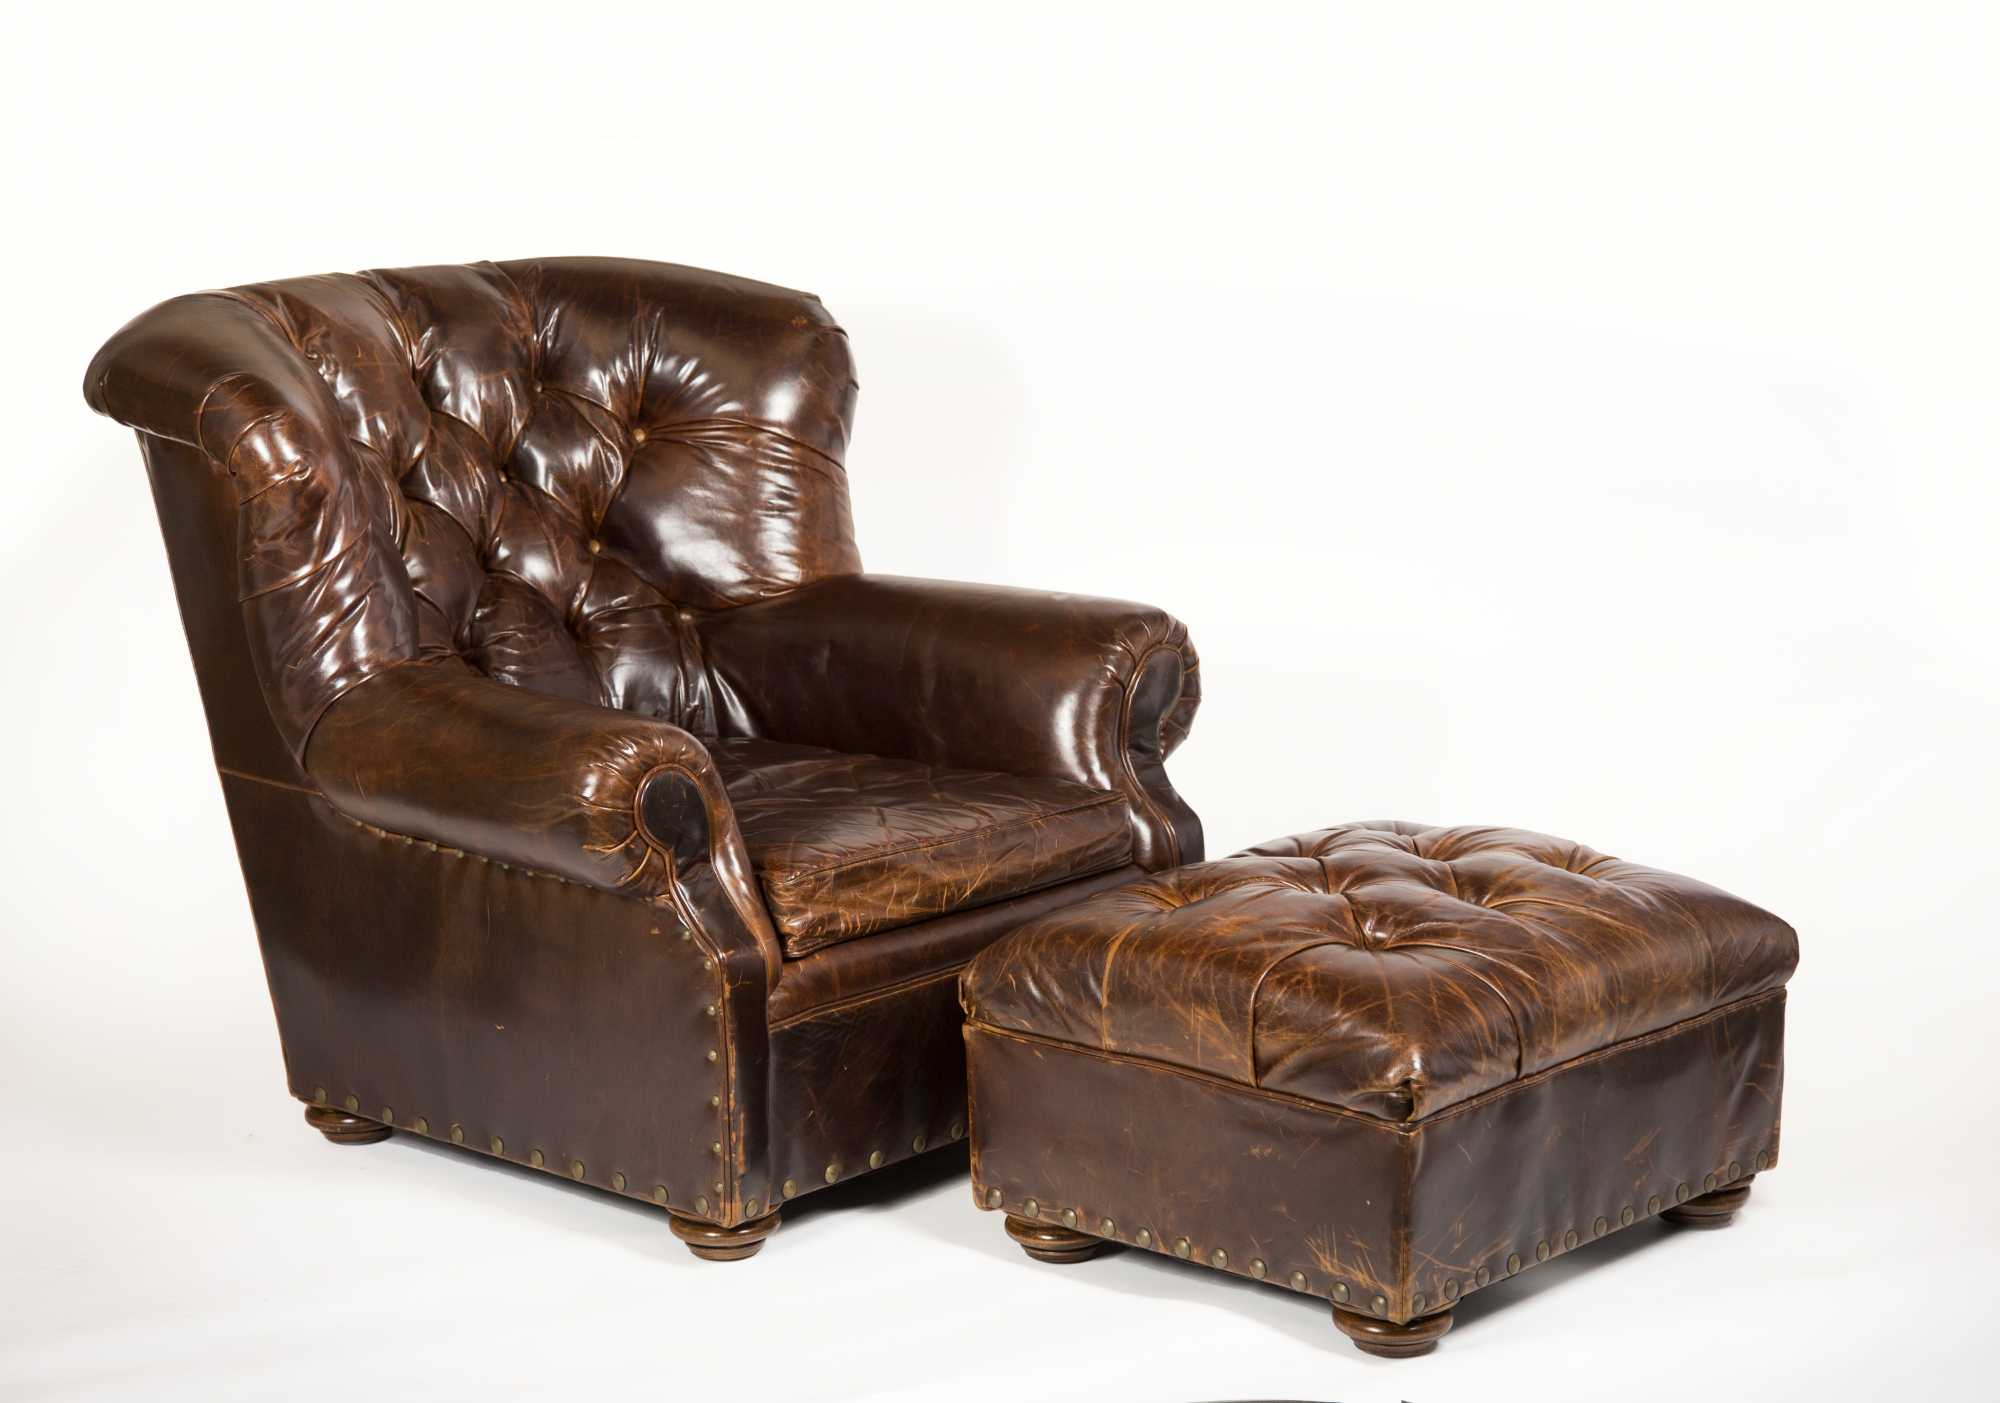 Restoration Hardware Leather Chairs Leather Lounge Chair And Ottoman Made By